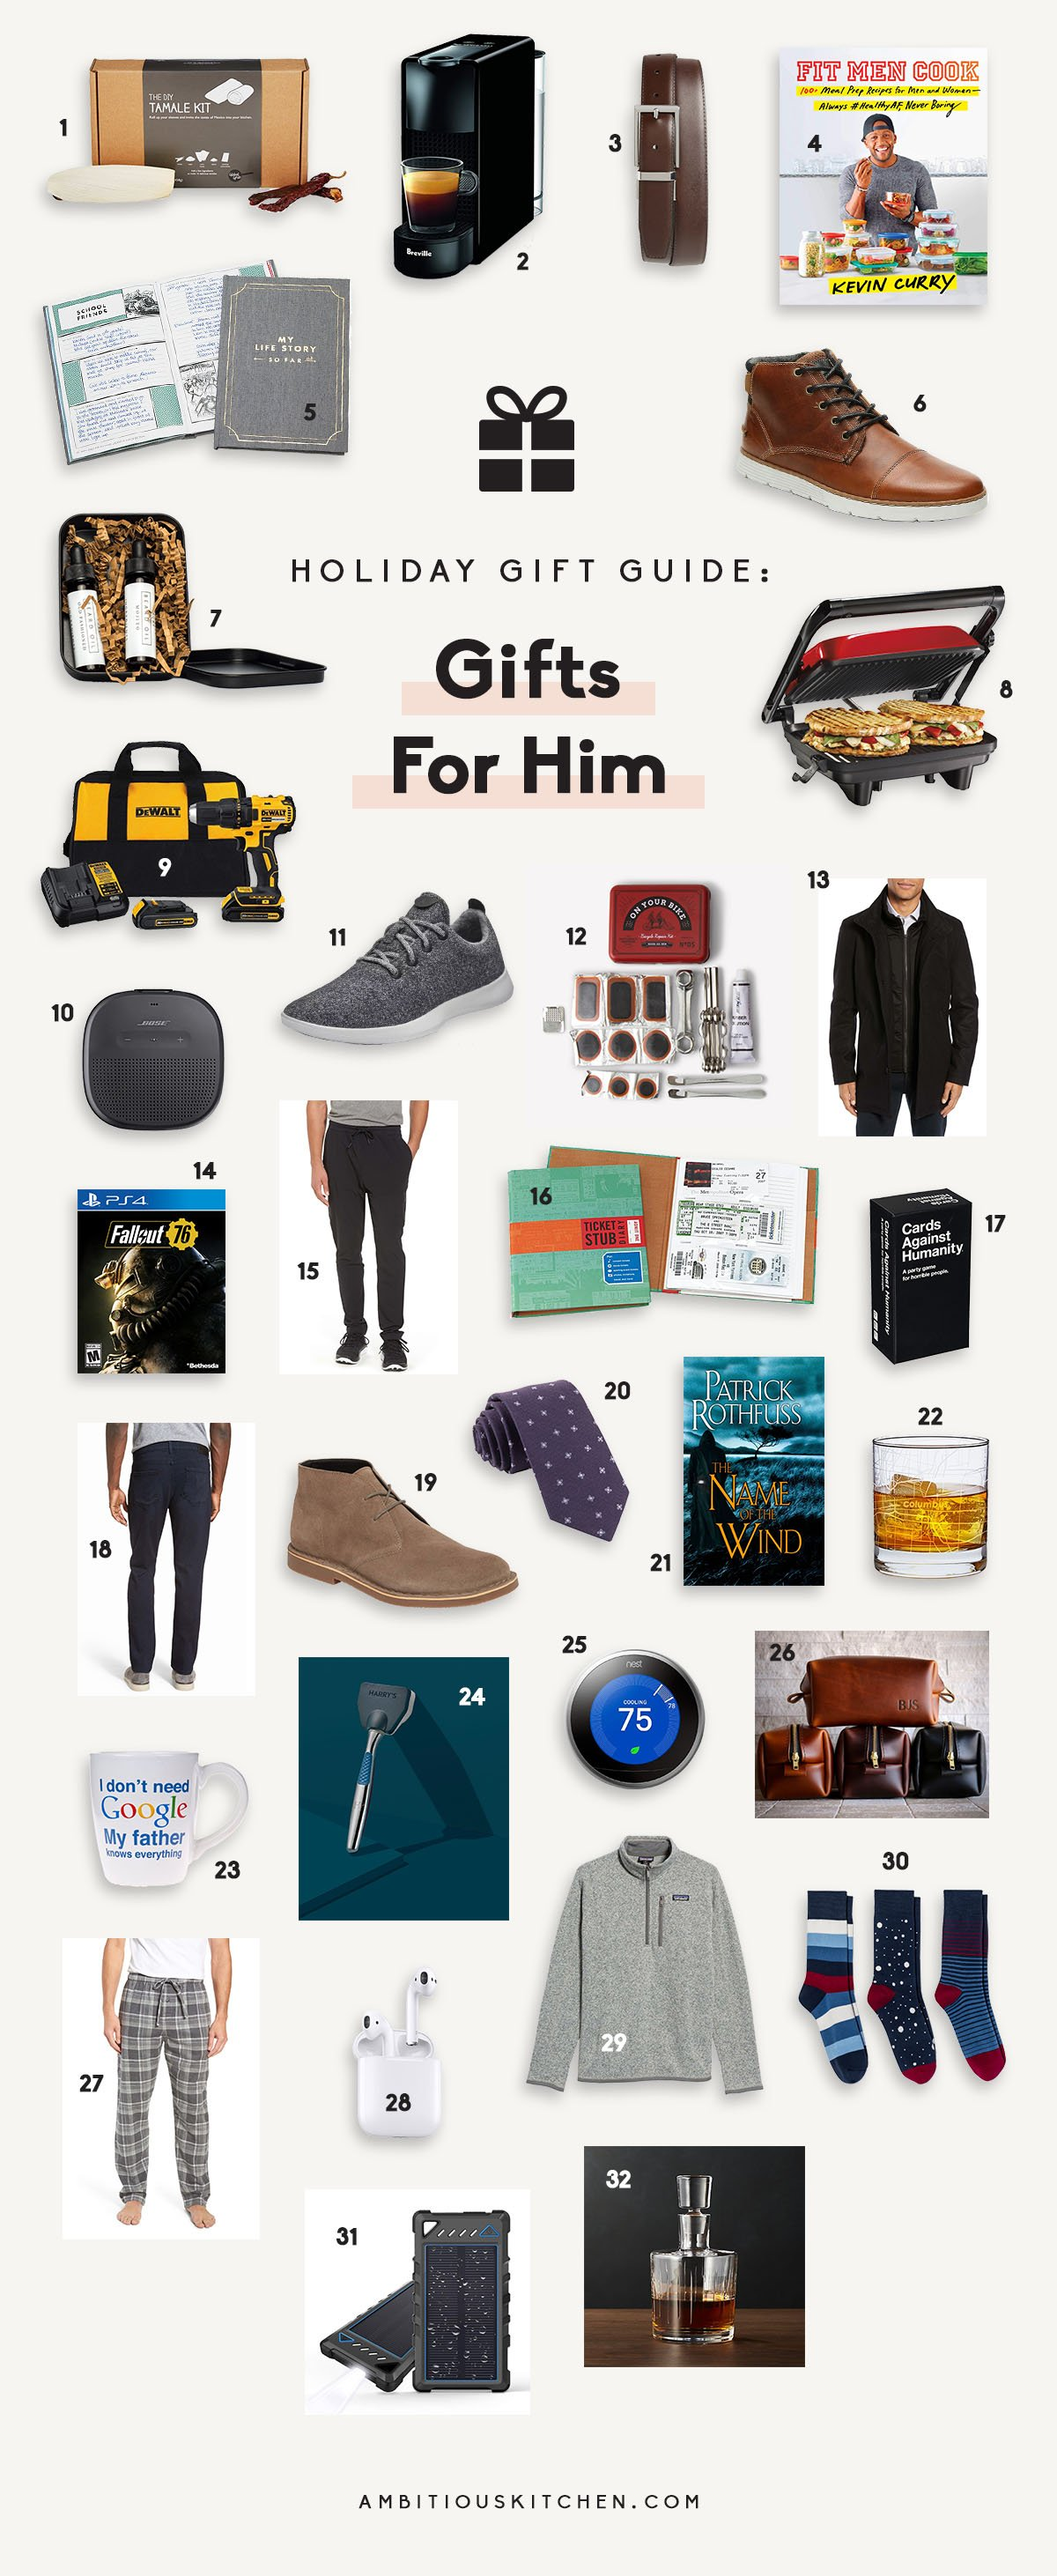 32 Fun Amazing Gift Ideas For The Men In Your Life Whether You